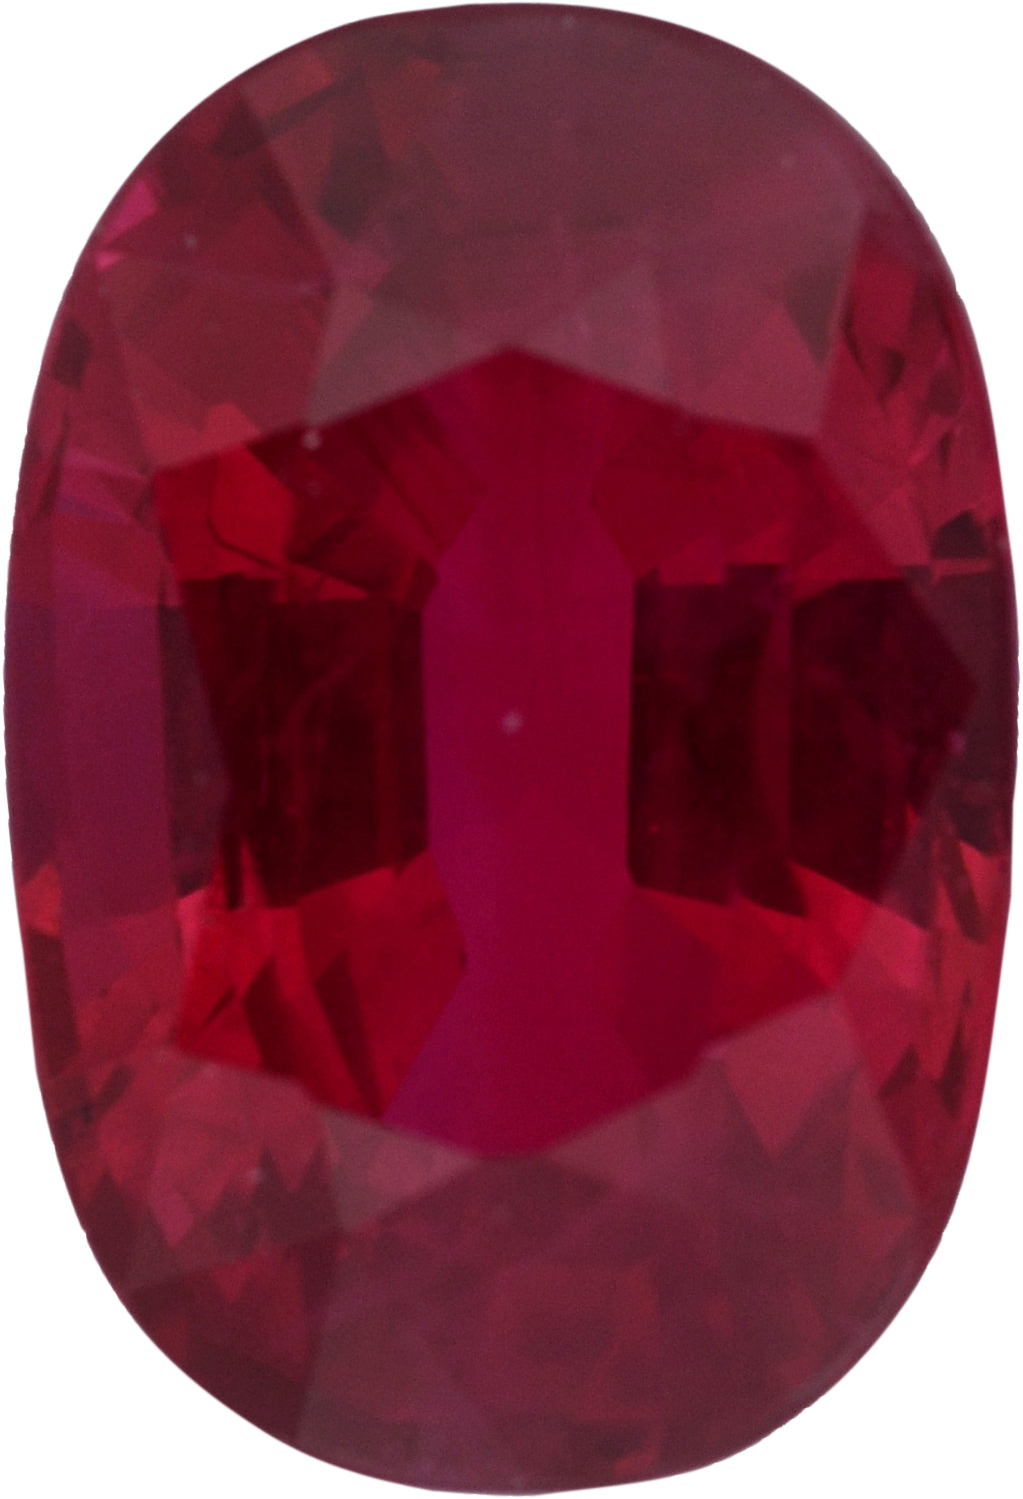 Dazzling Loose Ruby Gem in Oval Cut,  Red Color, 7.54 x 5.19 mm, 1.52 carats